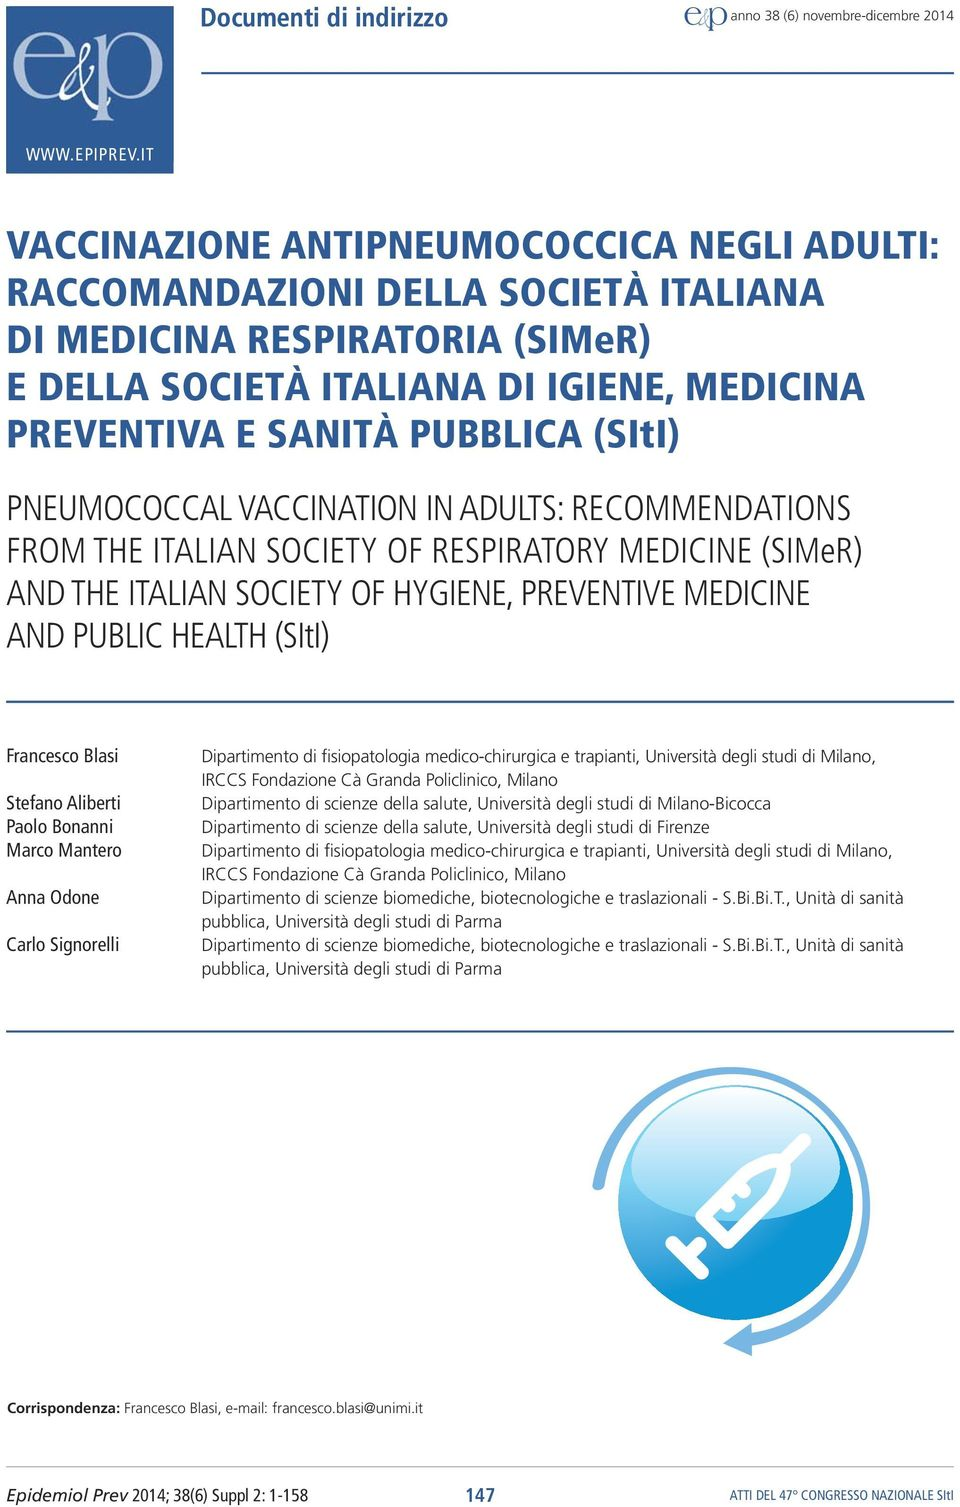 (SItI) PNEUMOCOCCAL VACCINATION IN ADULTS: RECOMMENDATIONS FROM THE ITALIAN SOCIETY OF RESPIRATORY MEDICINE (SIMeR) AND THE ITALIAN SOCIETY OF HYGIENE, PREVENTIVE MEDICINE AND PUBLIC HEALTH (SItI)